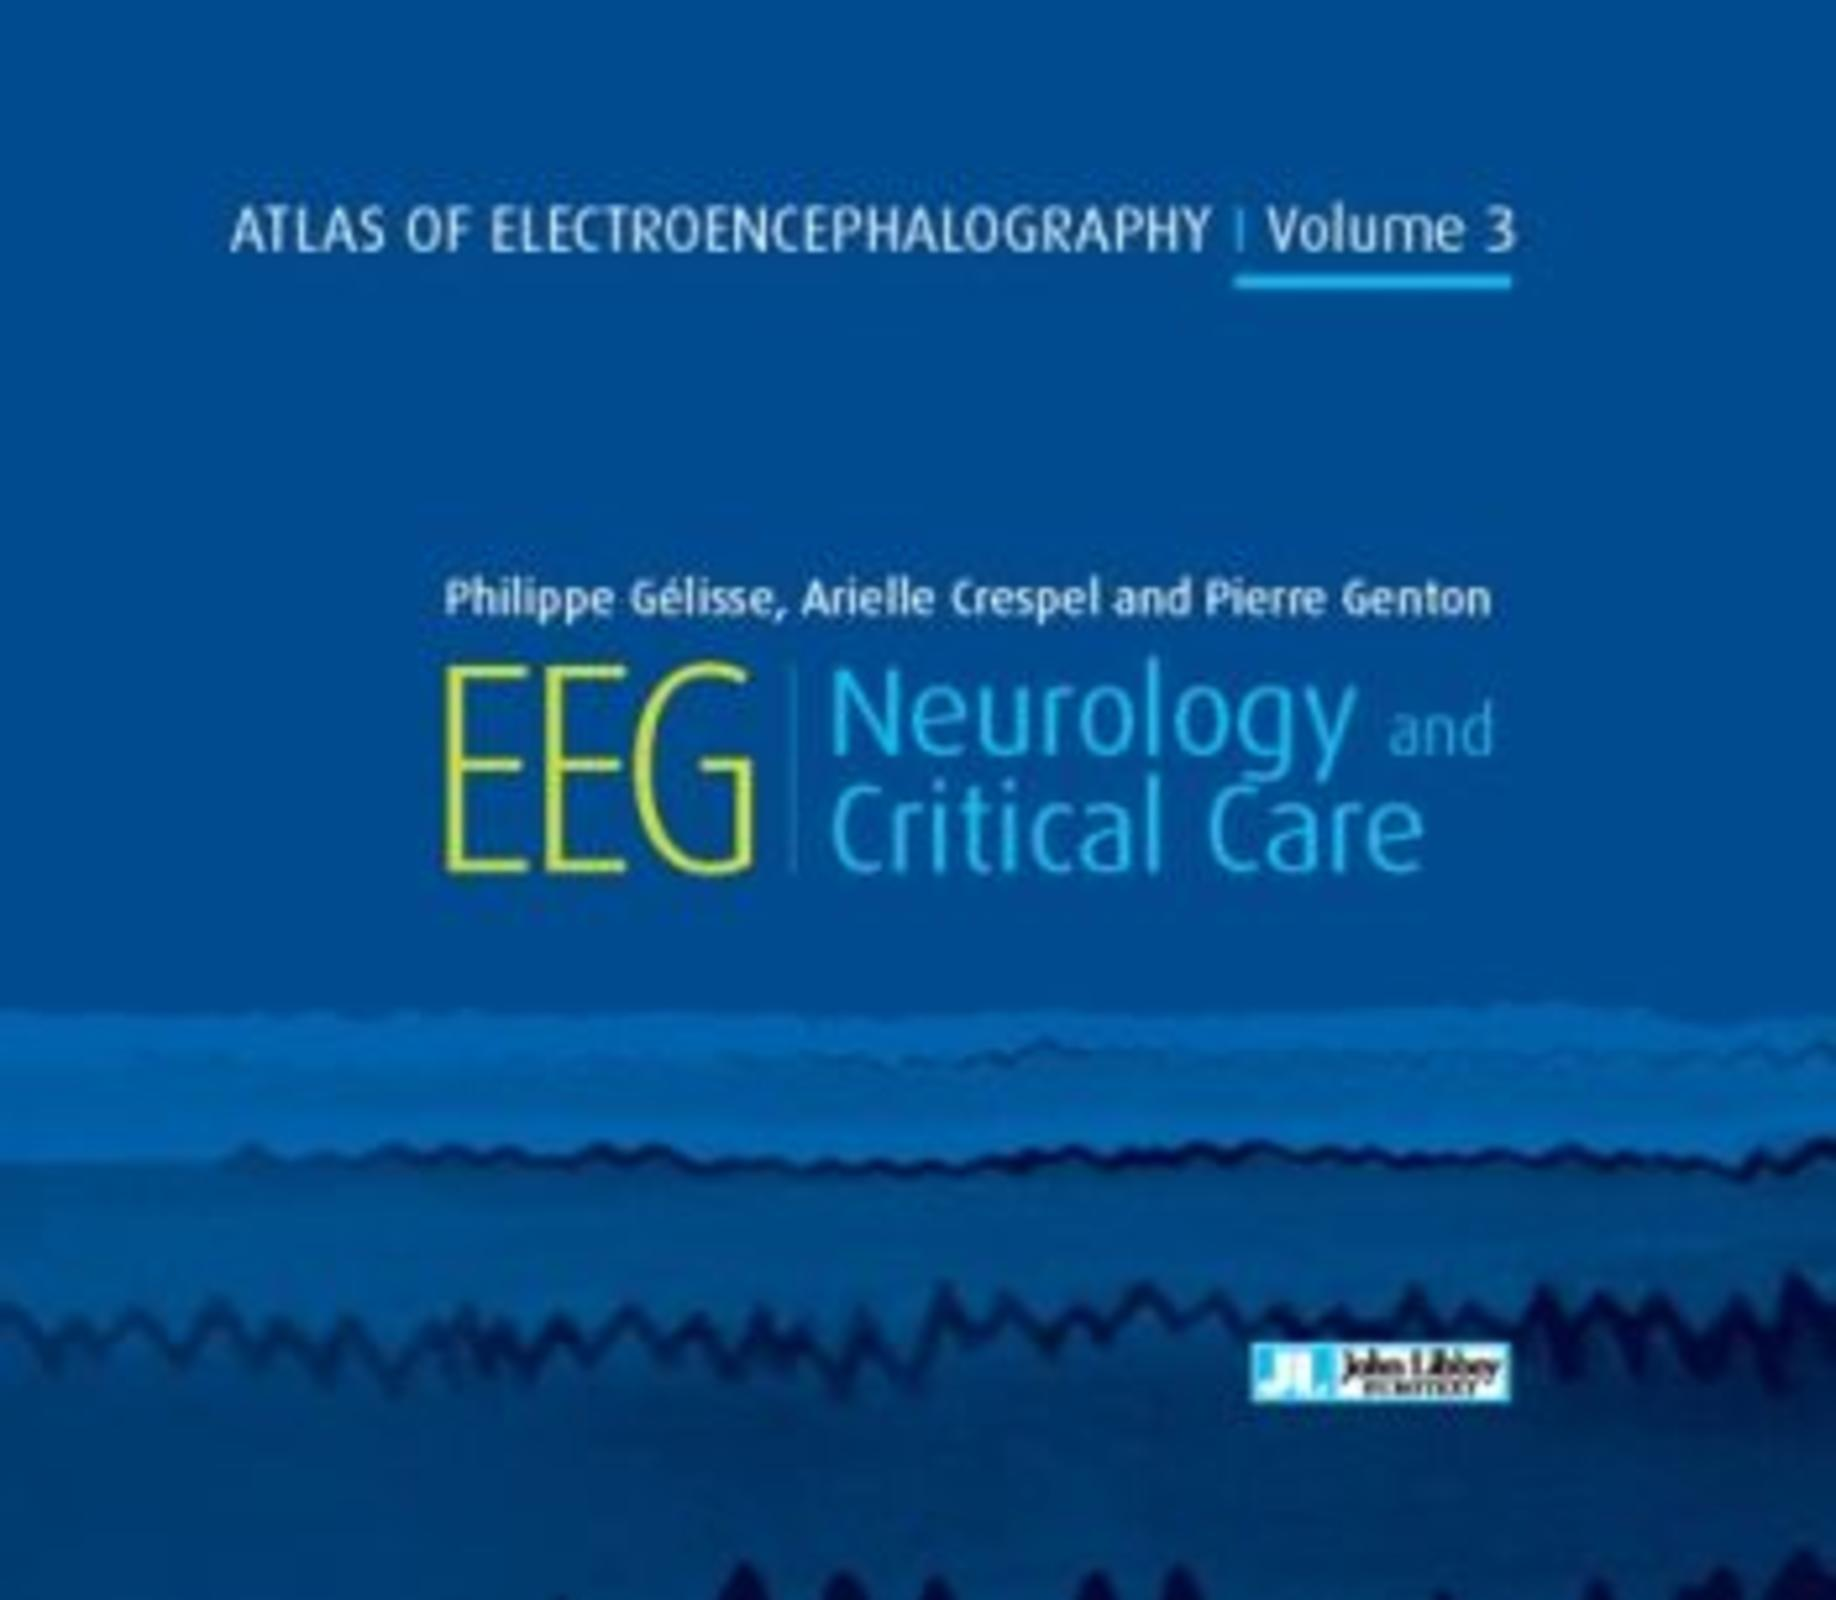 EEG : Neurology and Critical Care